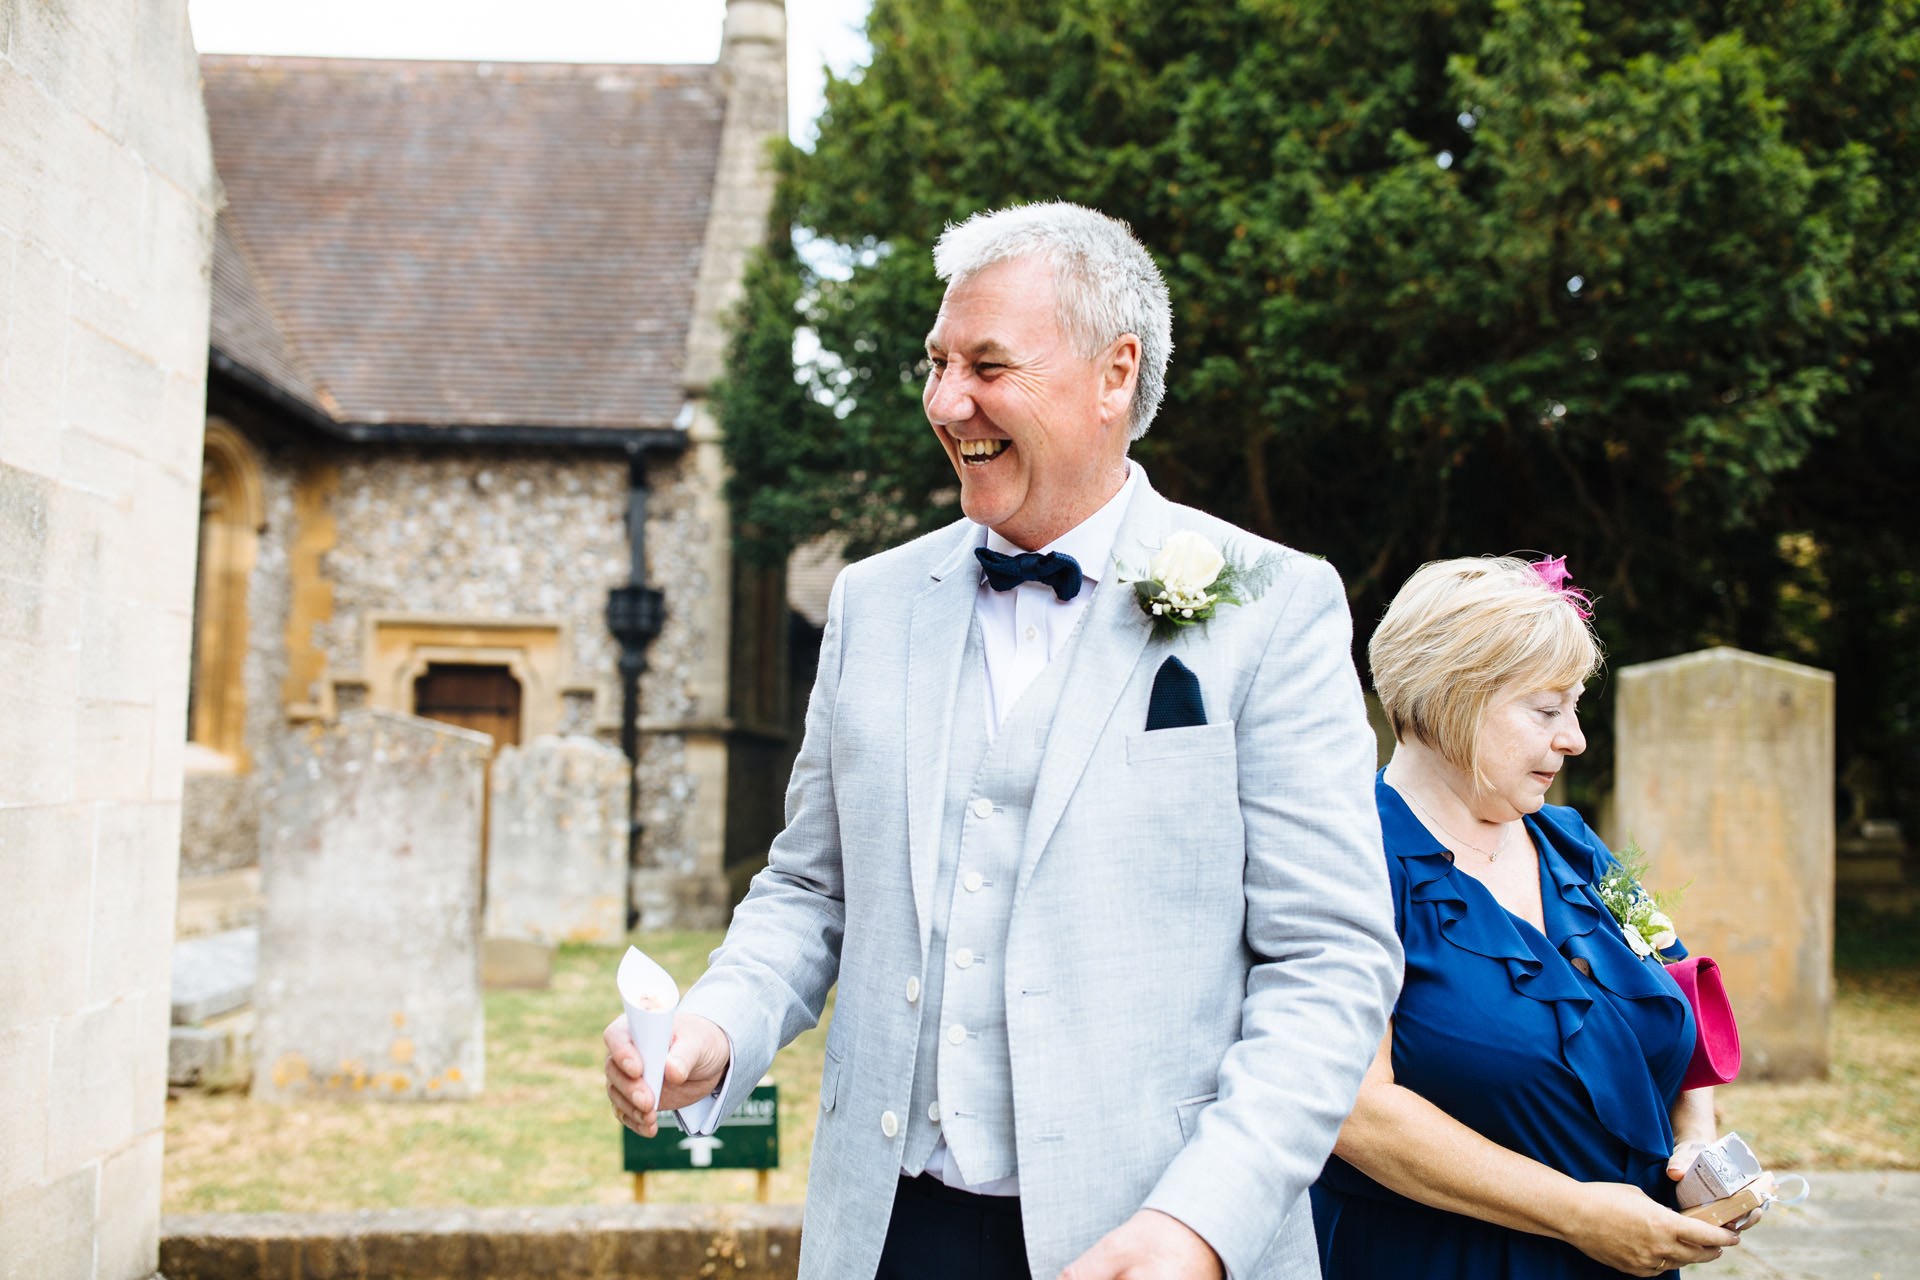 father of the bride outside the church holding confetti cone while laughing